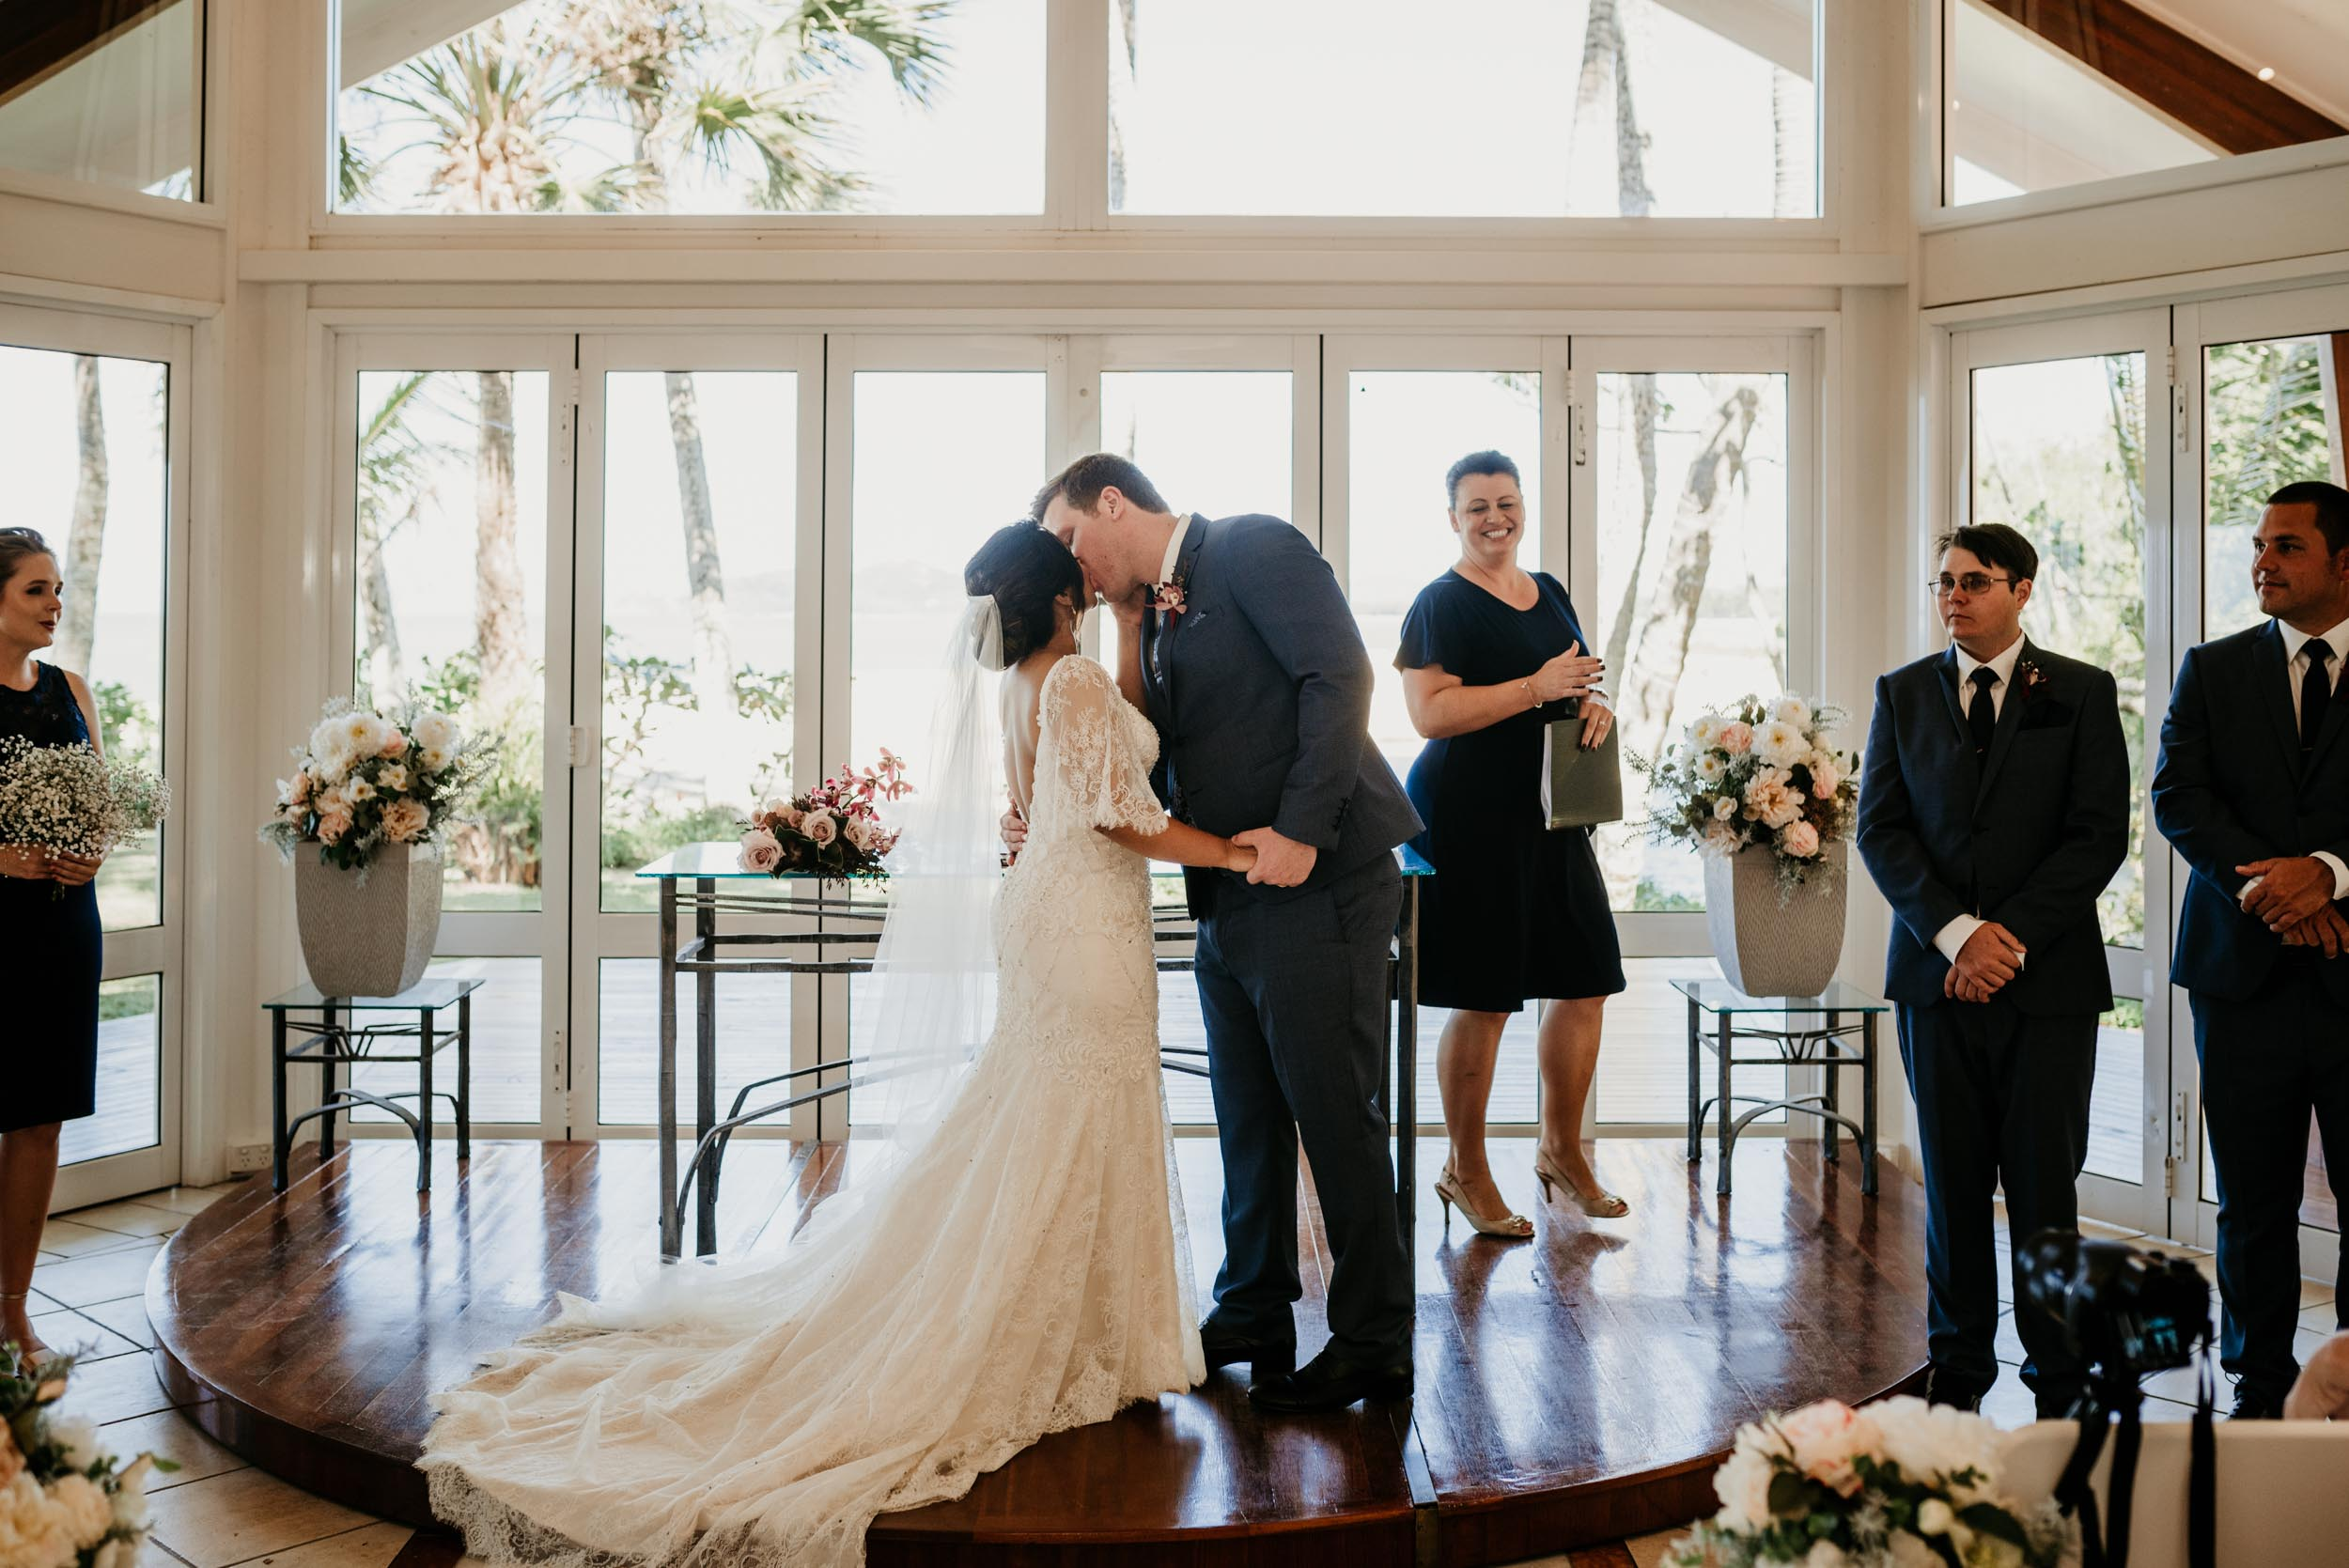 The Raw Photographer - Cairns Wedding Photographer - Palm Cove Ceremony - Pullman Reception - Dress White House Boutique-28.jpg